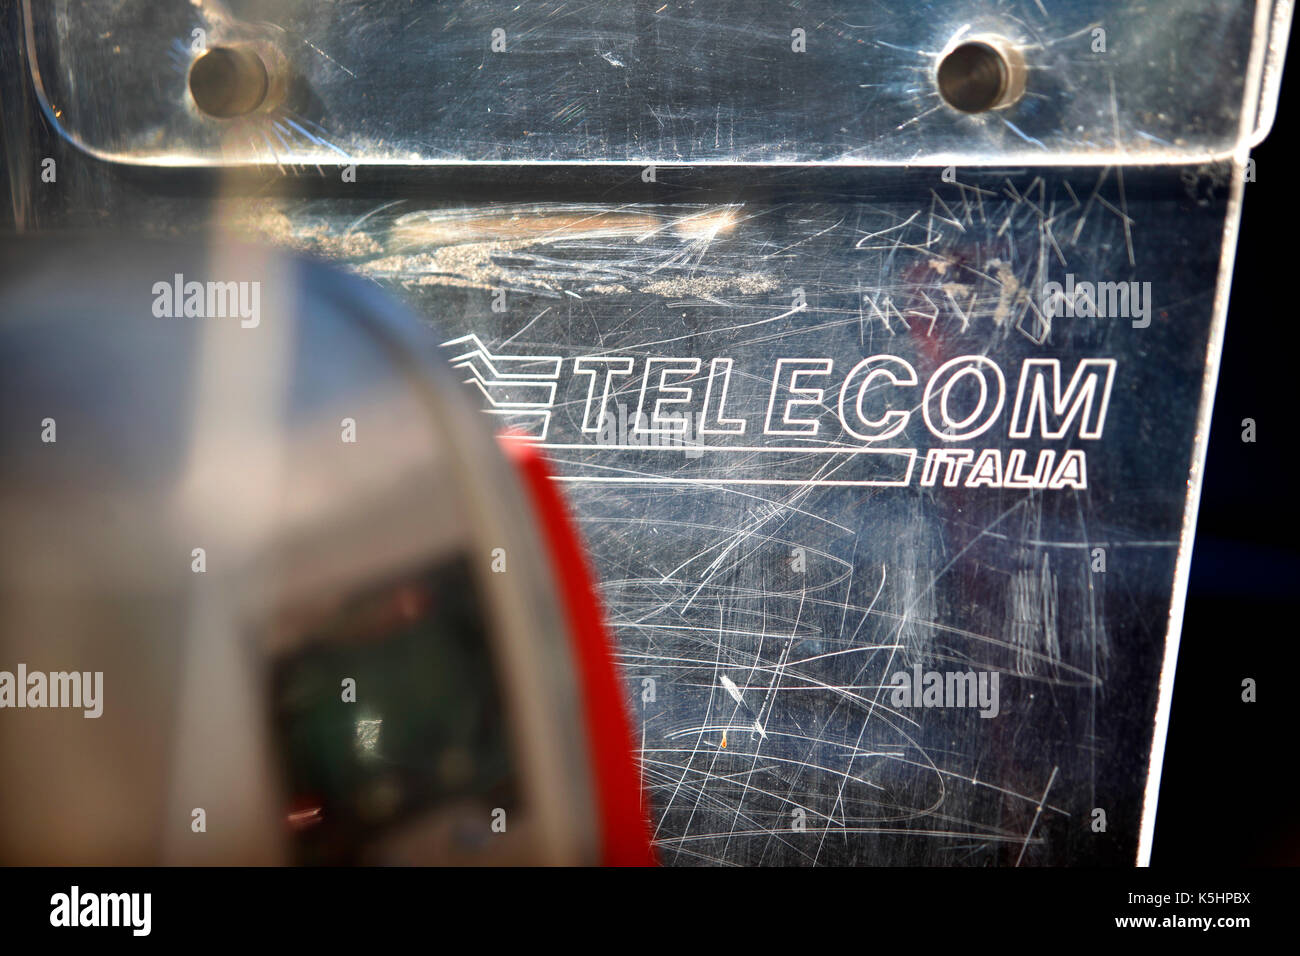 Scratched perspex on a Telecom Italia payphone, Penne, Italy. Picture has been reversed so that lettering is right way round. - Stock Image